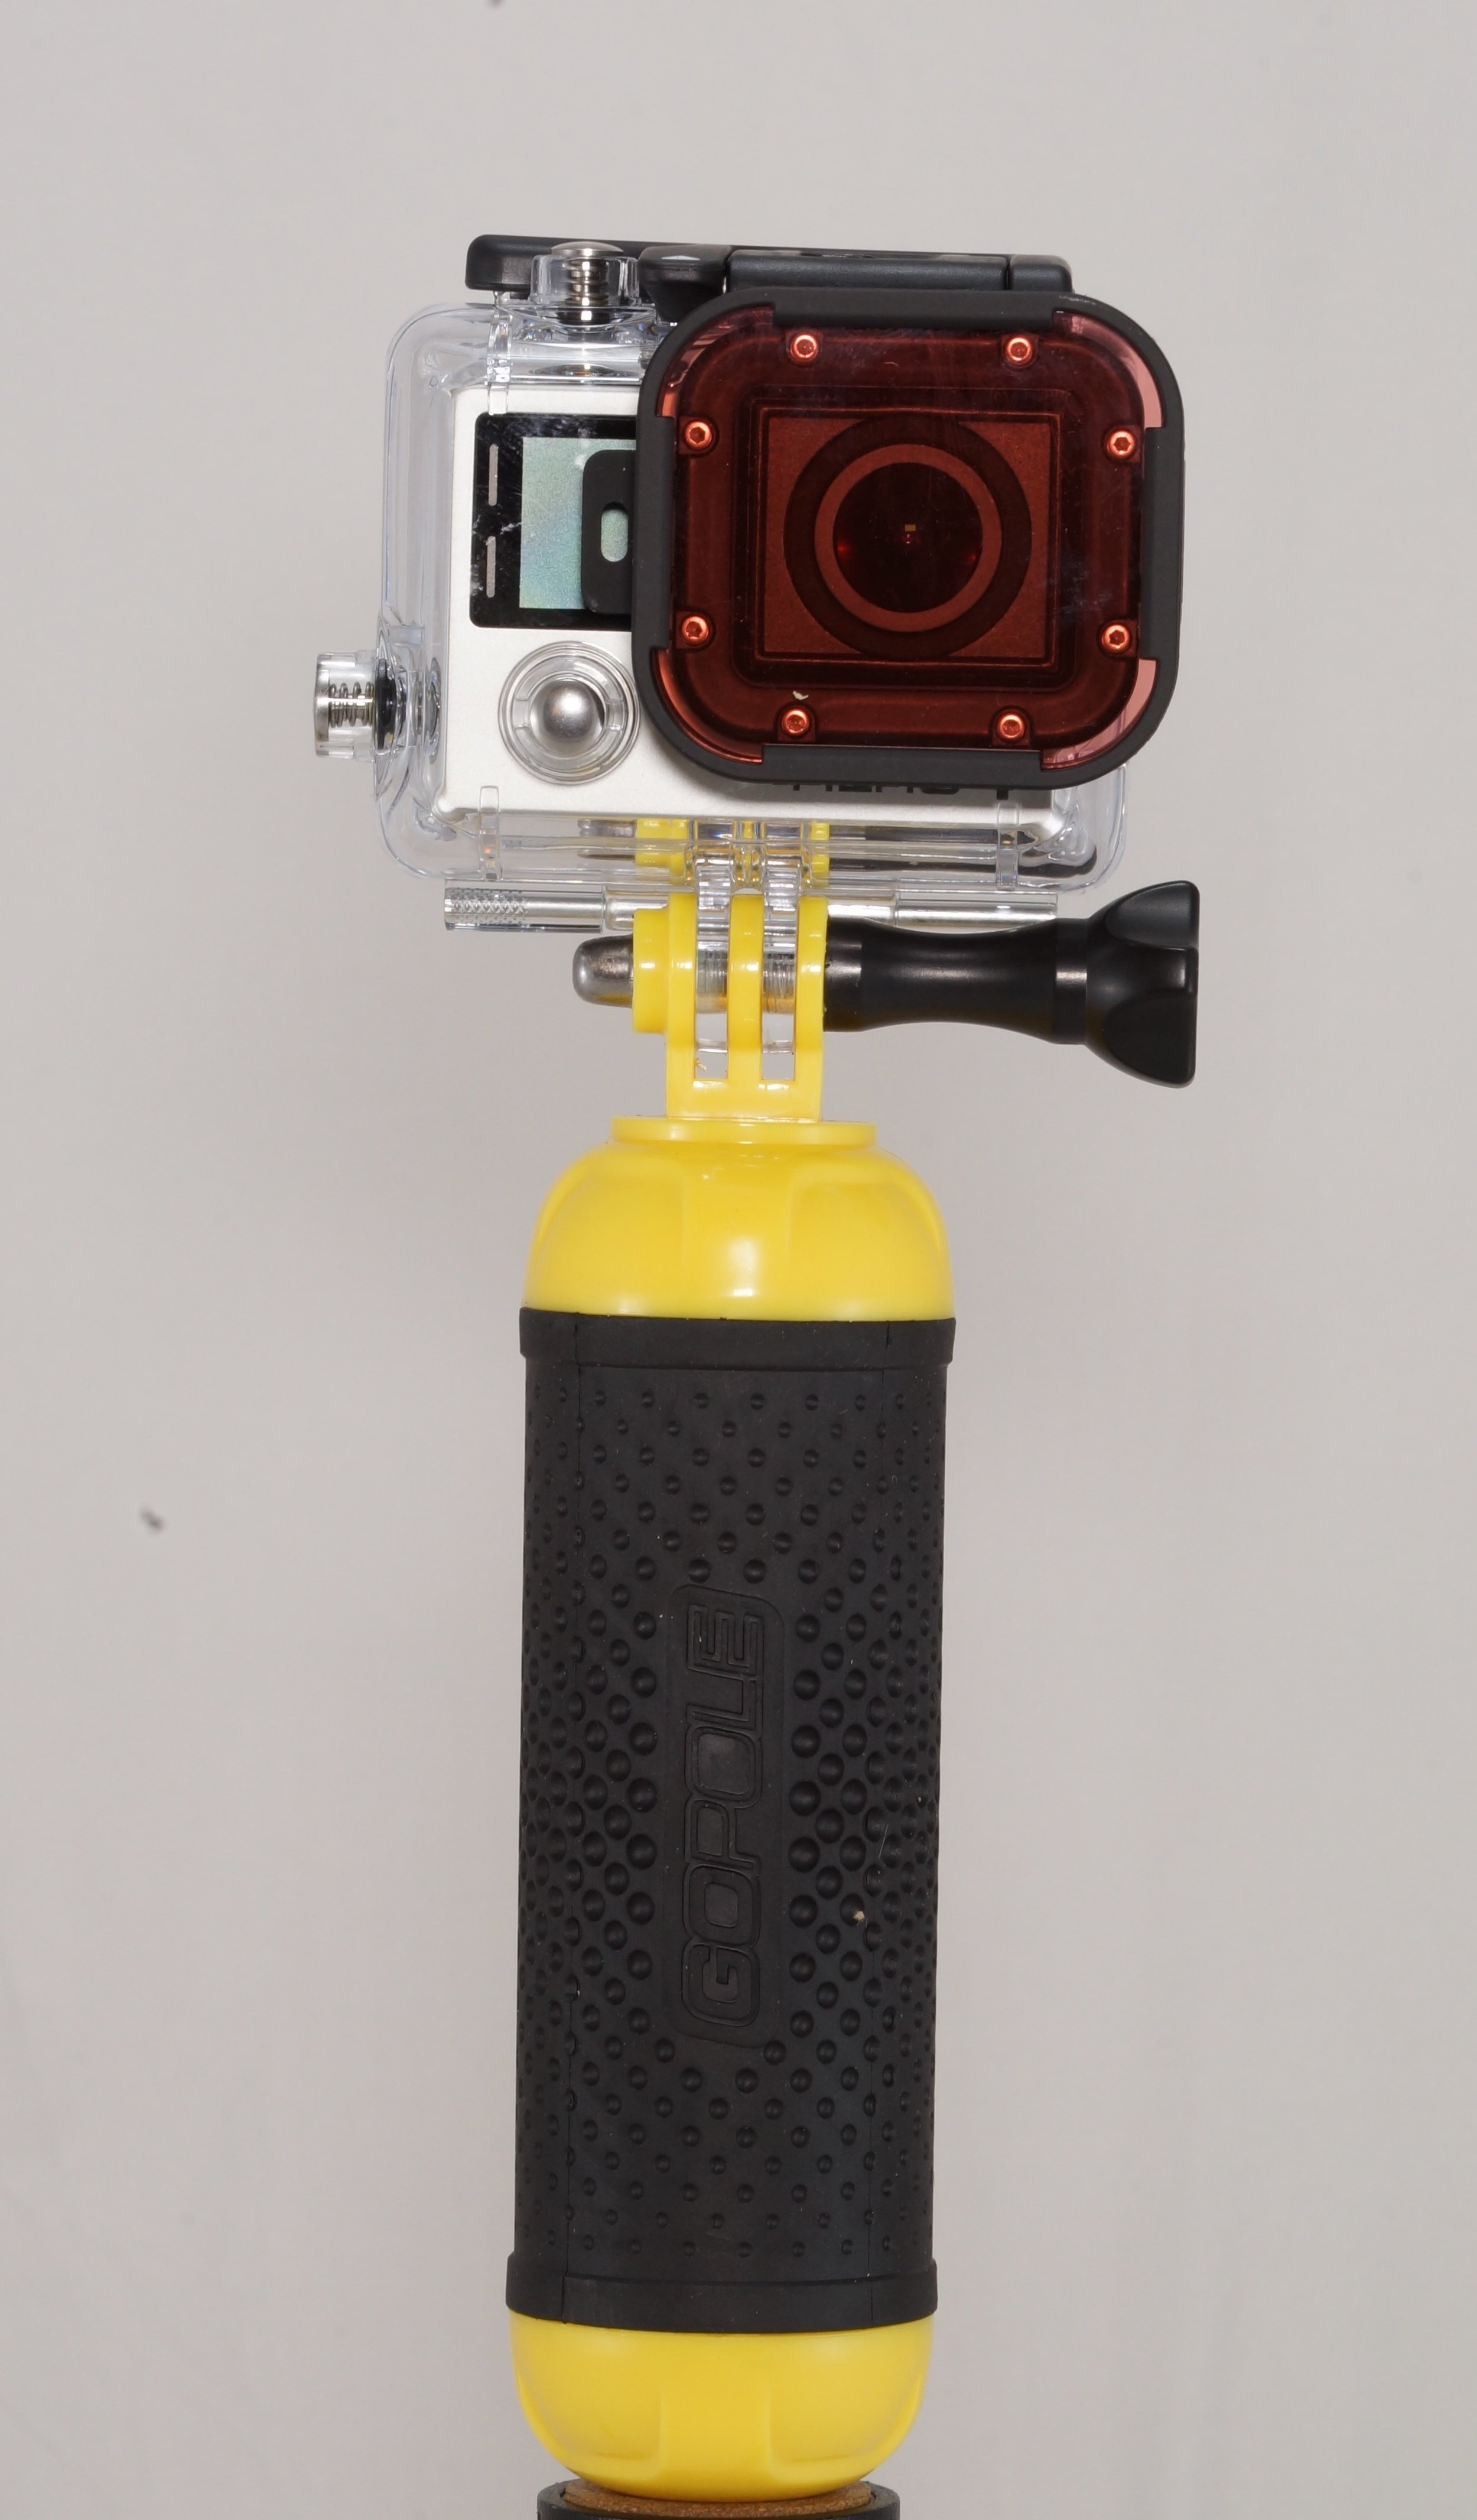 GoPro's  We rent GoPro's mounted on a floating handle with a wrist strap and snorkel filter to improve your colors. Captures 1080p video   12 megapixel photosWe also have accessories for your own camera to buy or rent -